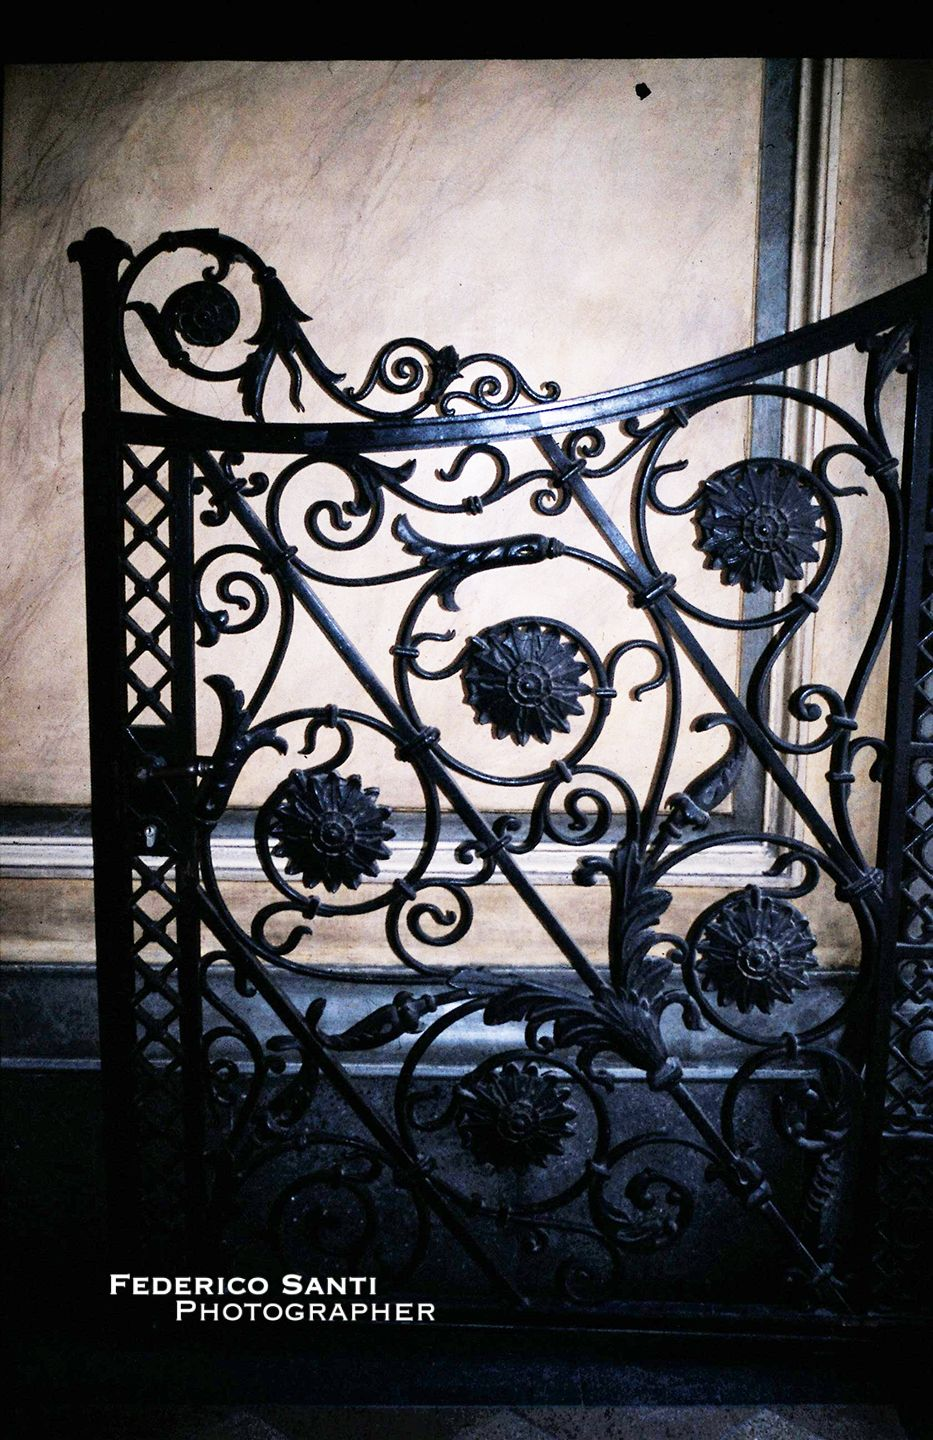 Pin antique garden gates in wrought iron an art nouveau style on - Find This Pin And More On Art Nouveau Secession Ironwork Of Budapest Hungary Vienna Austria Detail Of A Wrought Iron Gate